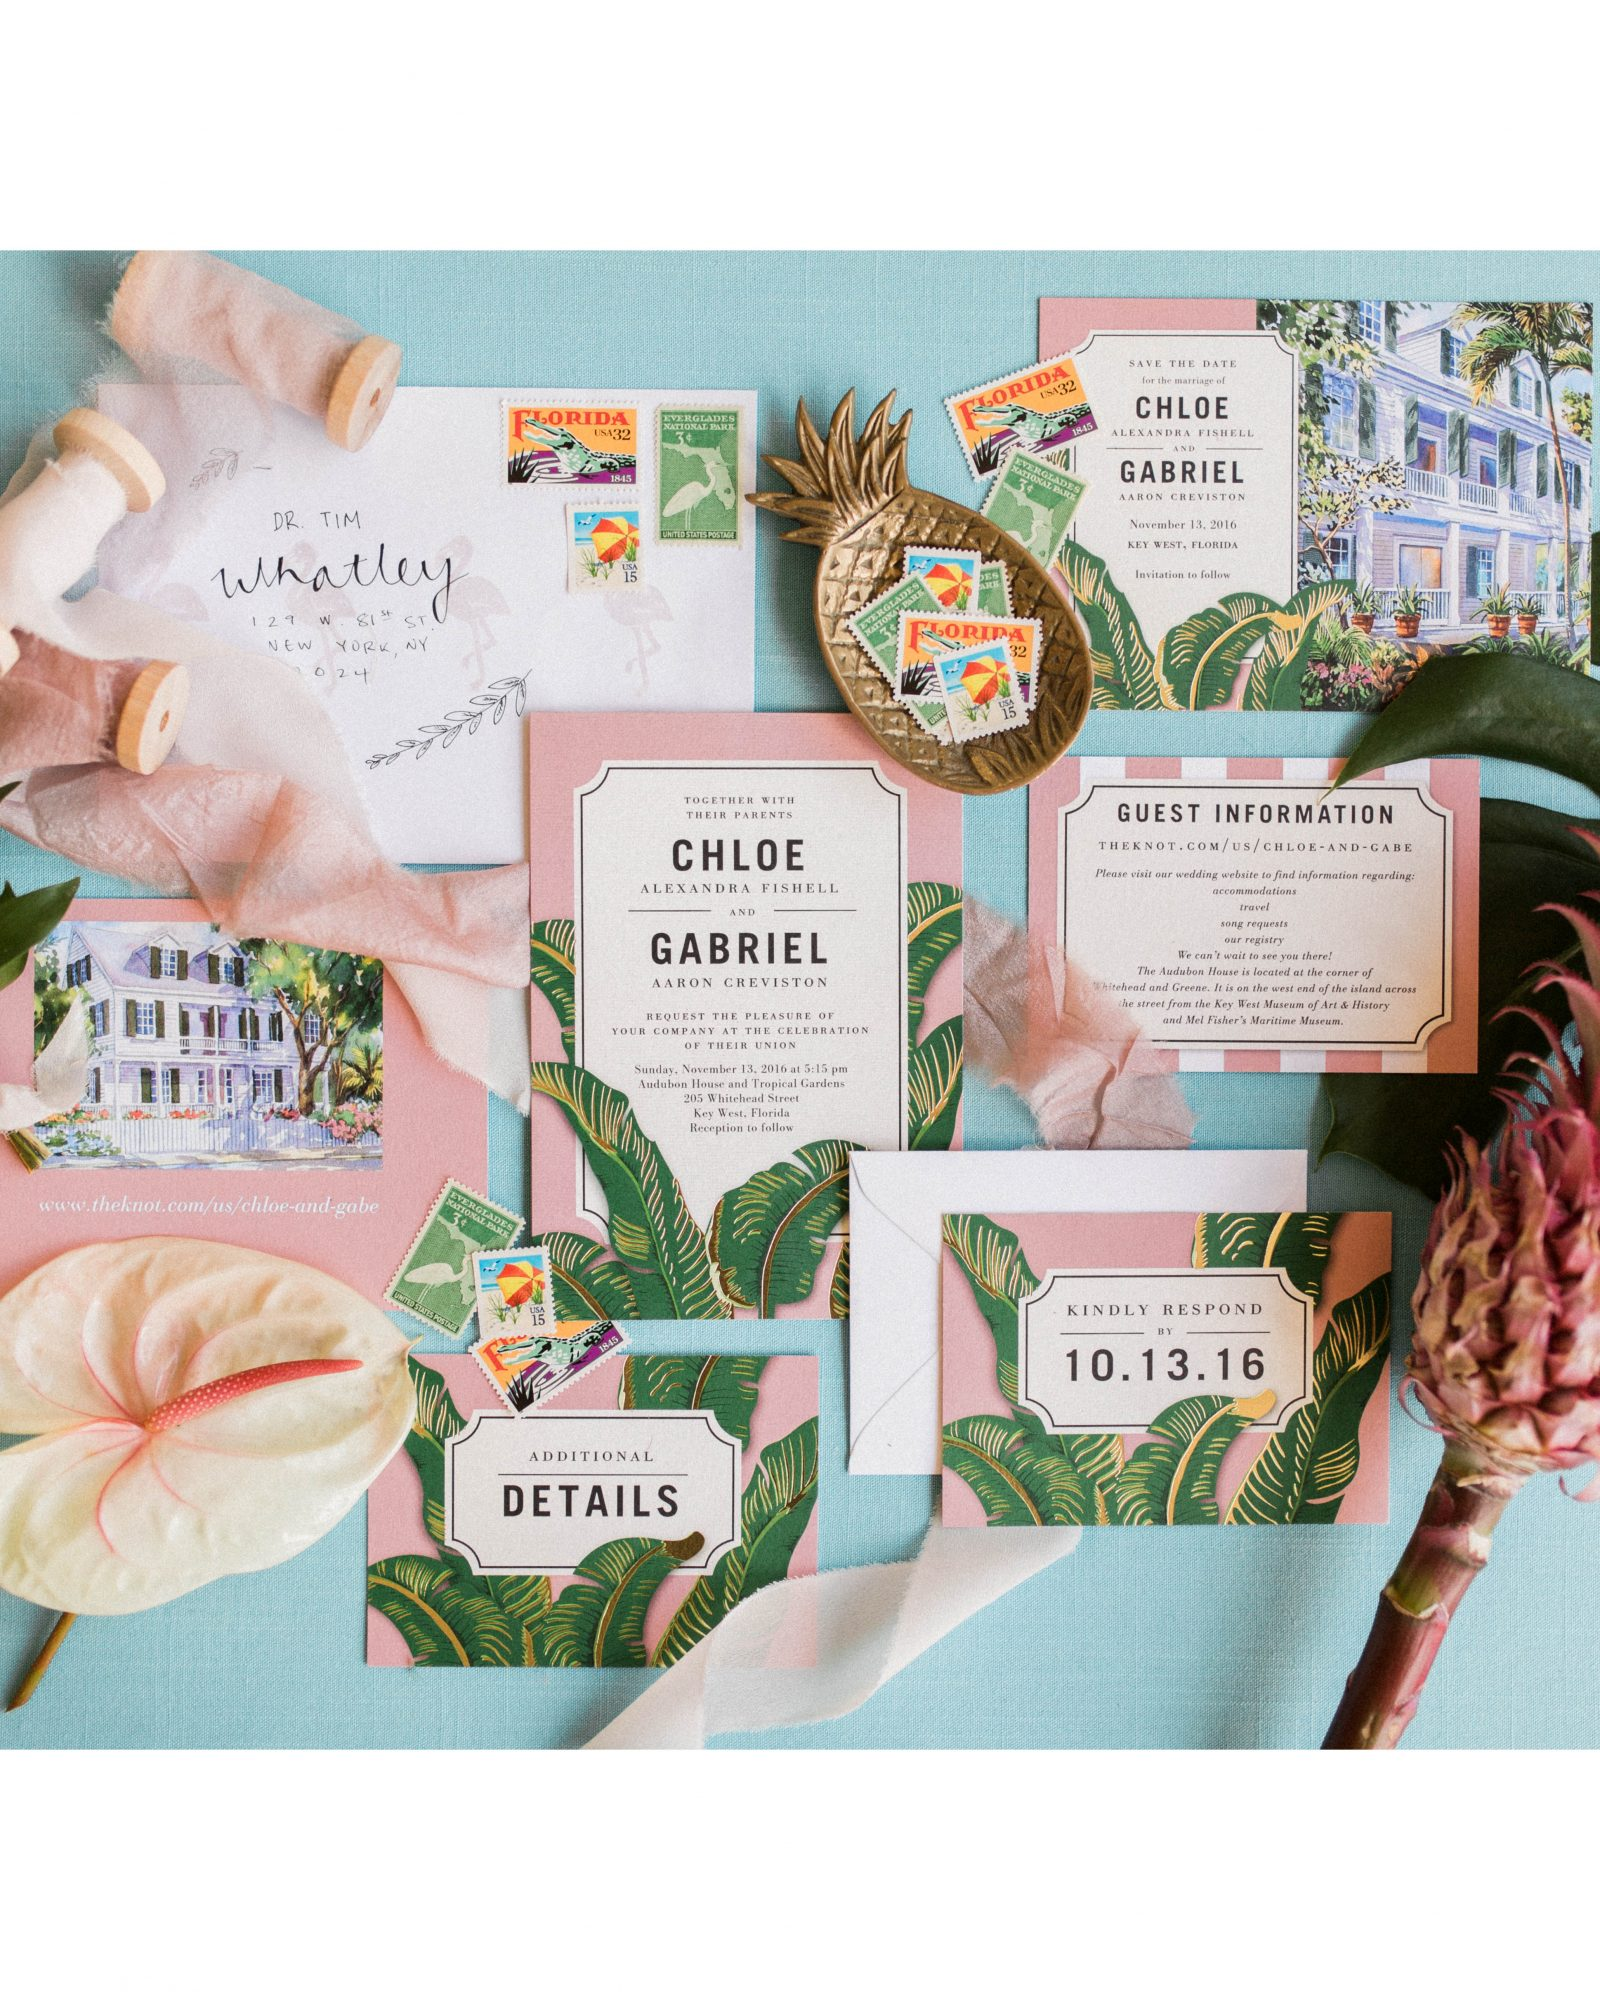 This couple chose the perfect pink-and-green Wedding Paper Divas invitations for their Key West nuptials.